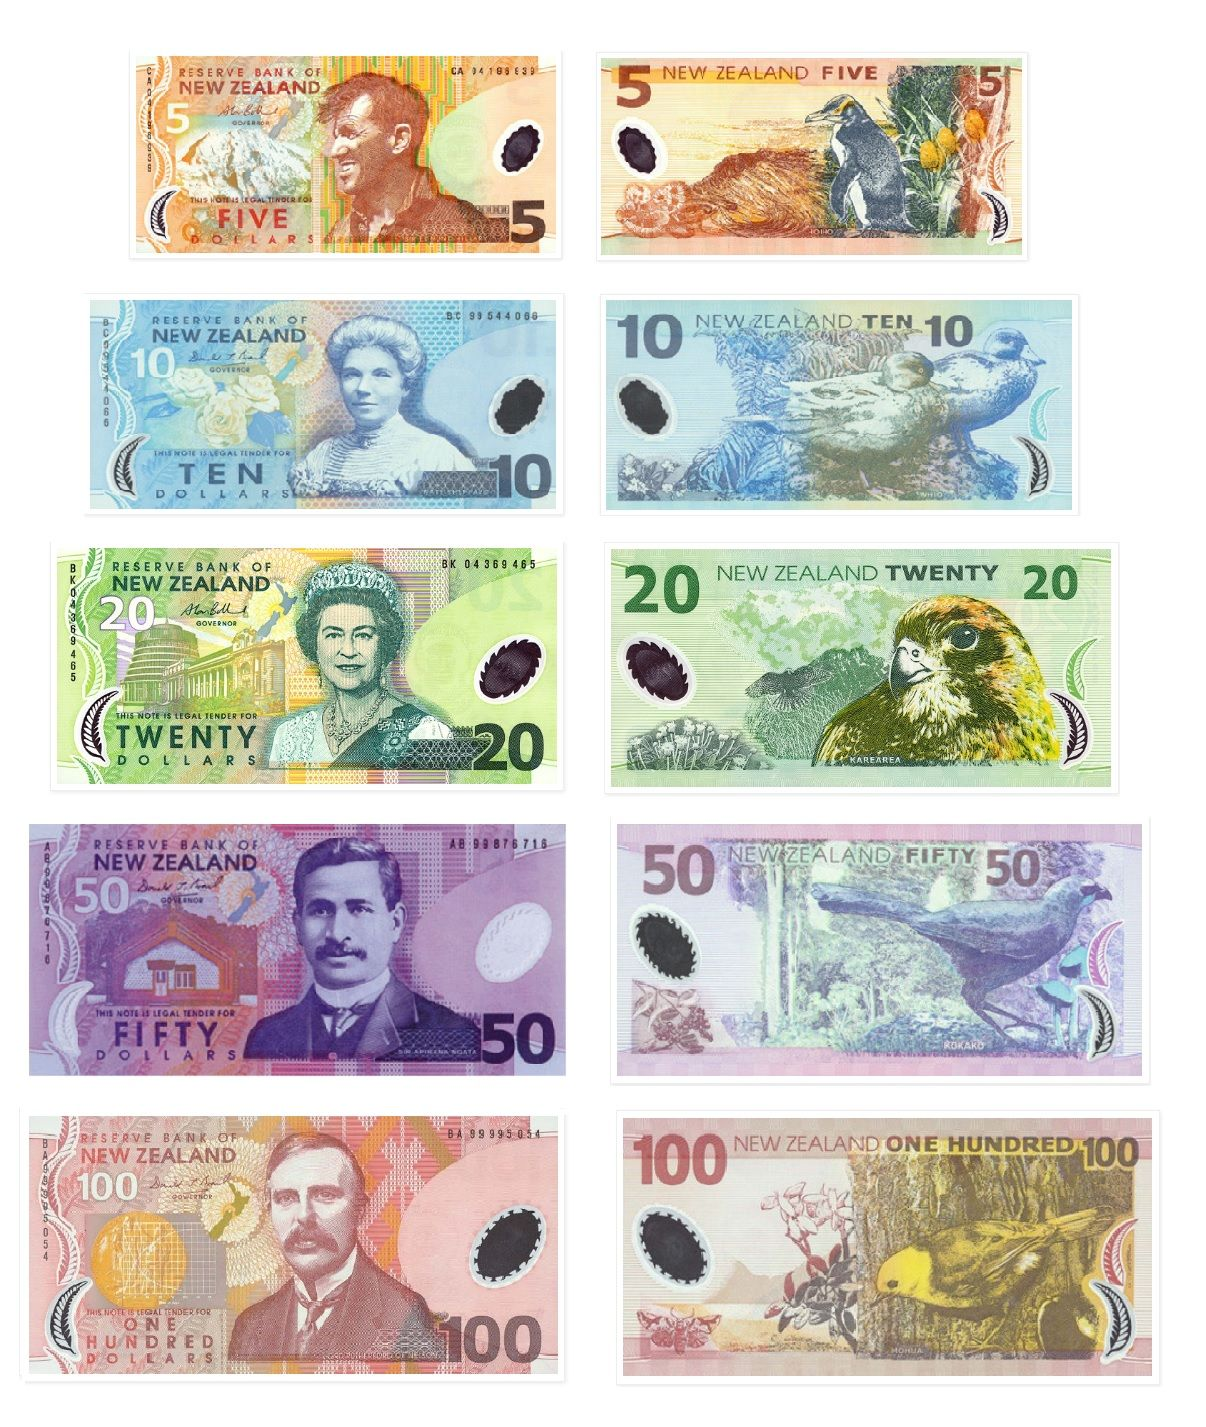 One New Zealand Dollar Is Worth Sixty Seven Us Cents In The Past 30 Years Has Transformed From An Agrarian Economy Relying On Farming To A